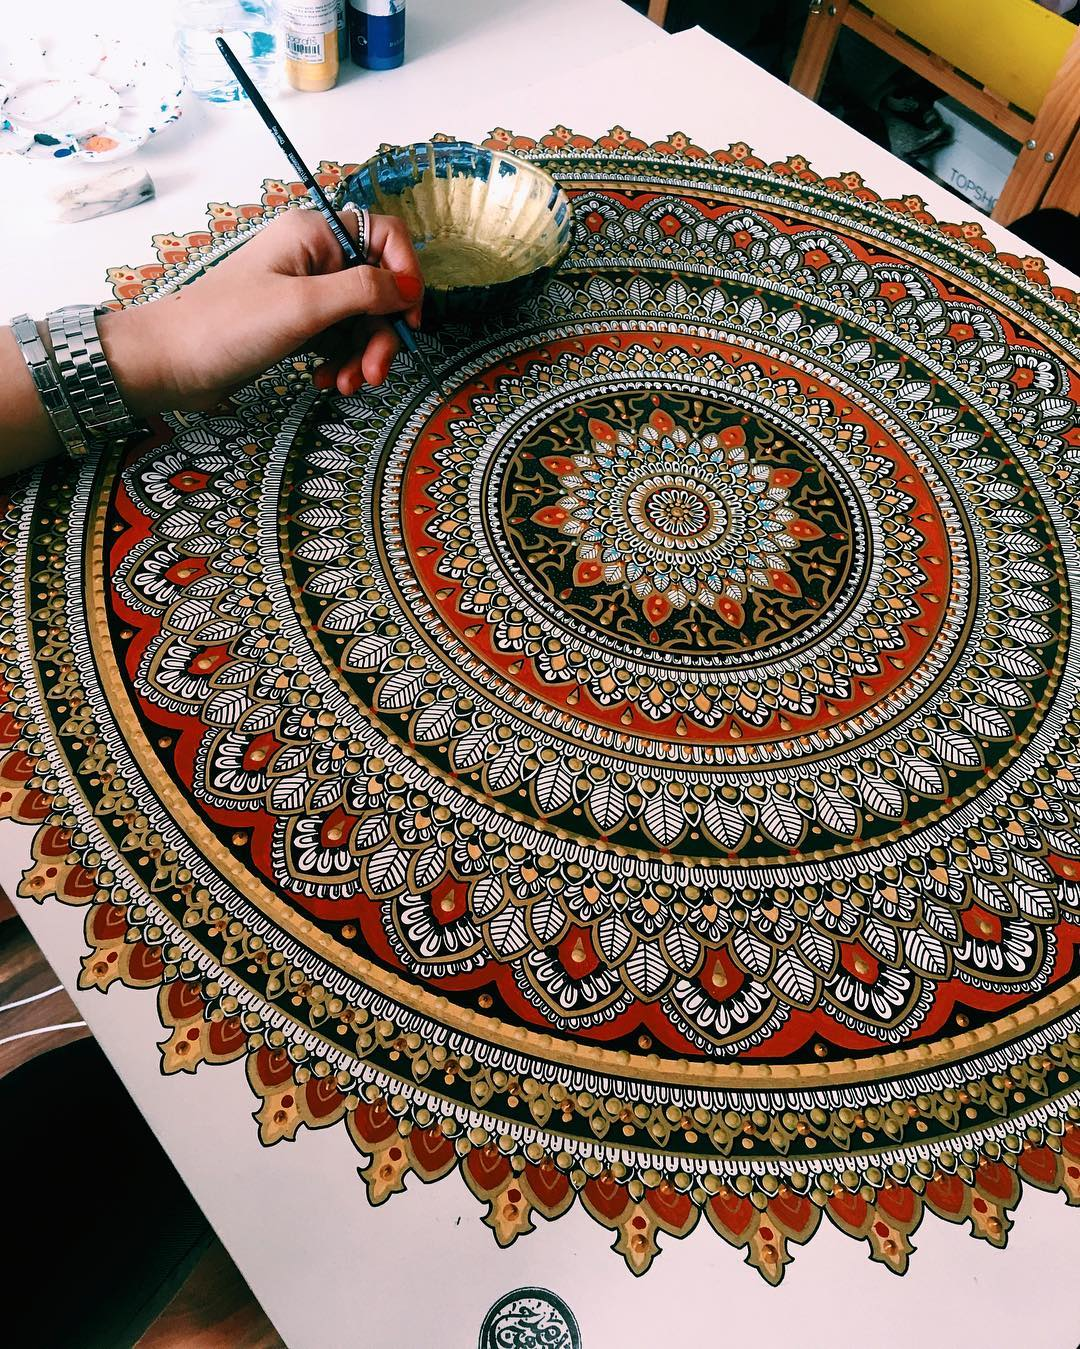 New Painted Mandalas Gilded with Gold Leaf by Artist Asmahan Rose Mosleh